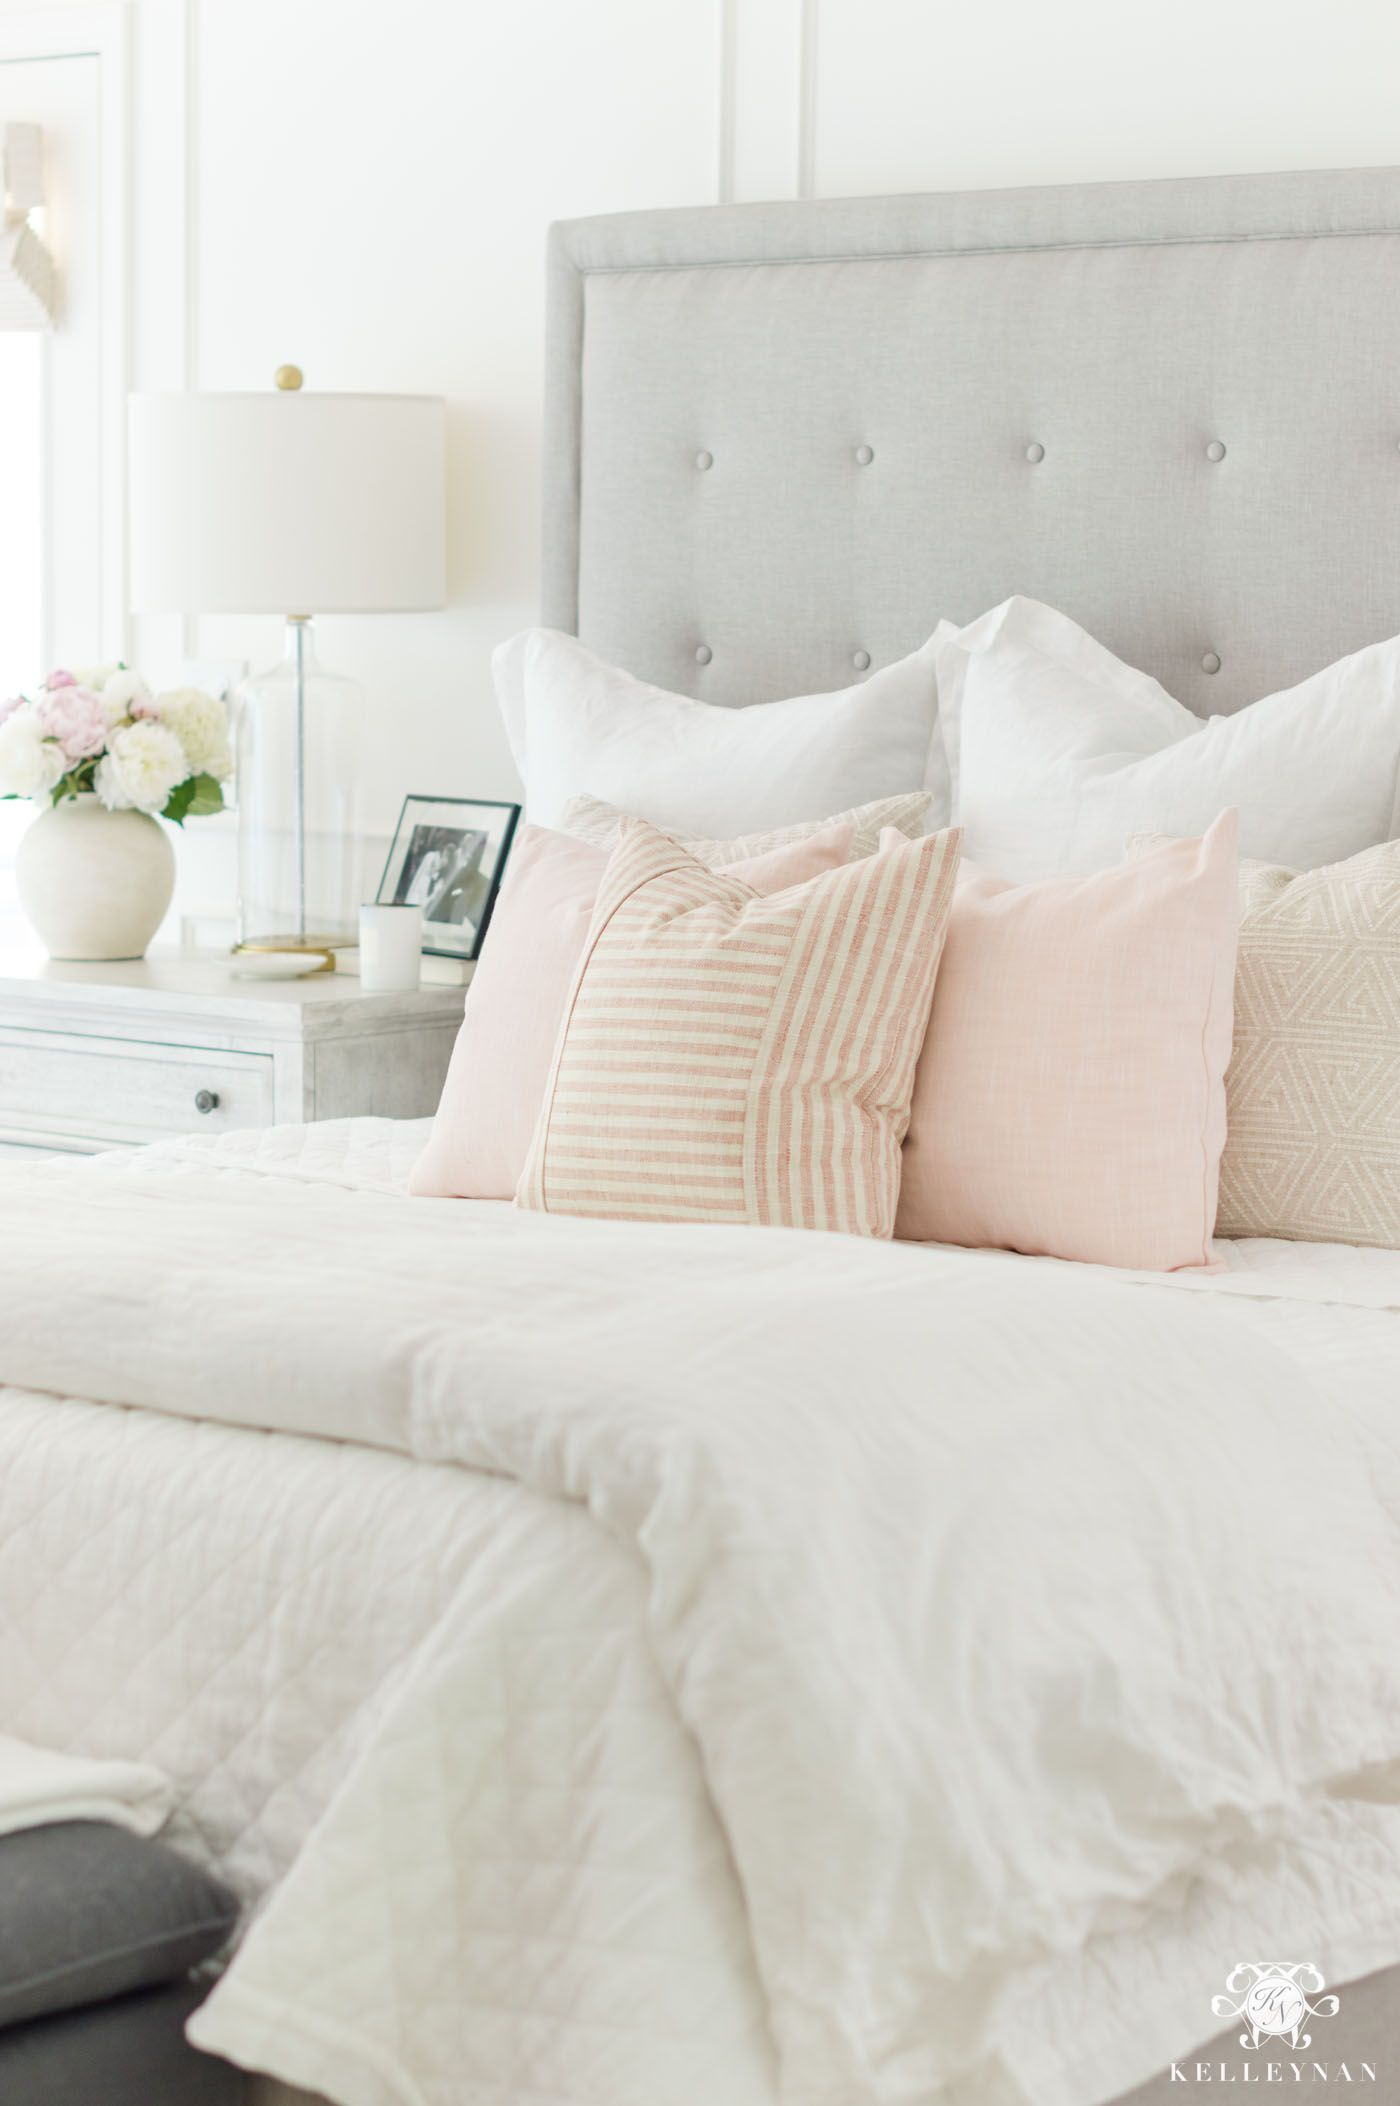 Six Blush Pink Bedroom Tips That Aren T Too Girly Kelley Nan In 2020 Pink And Grey Room White Bedroom Set Blush Pink Bedroom